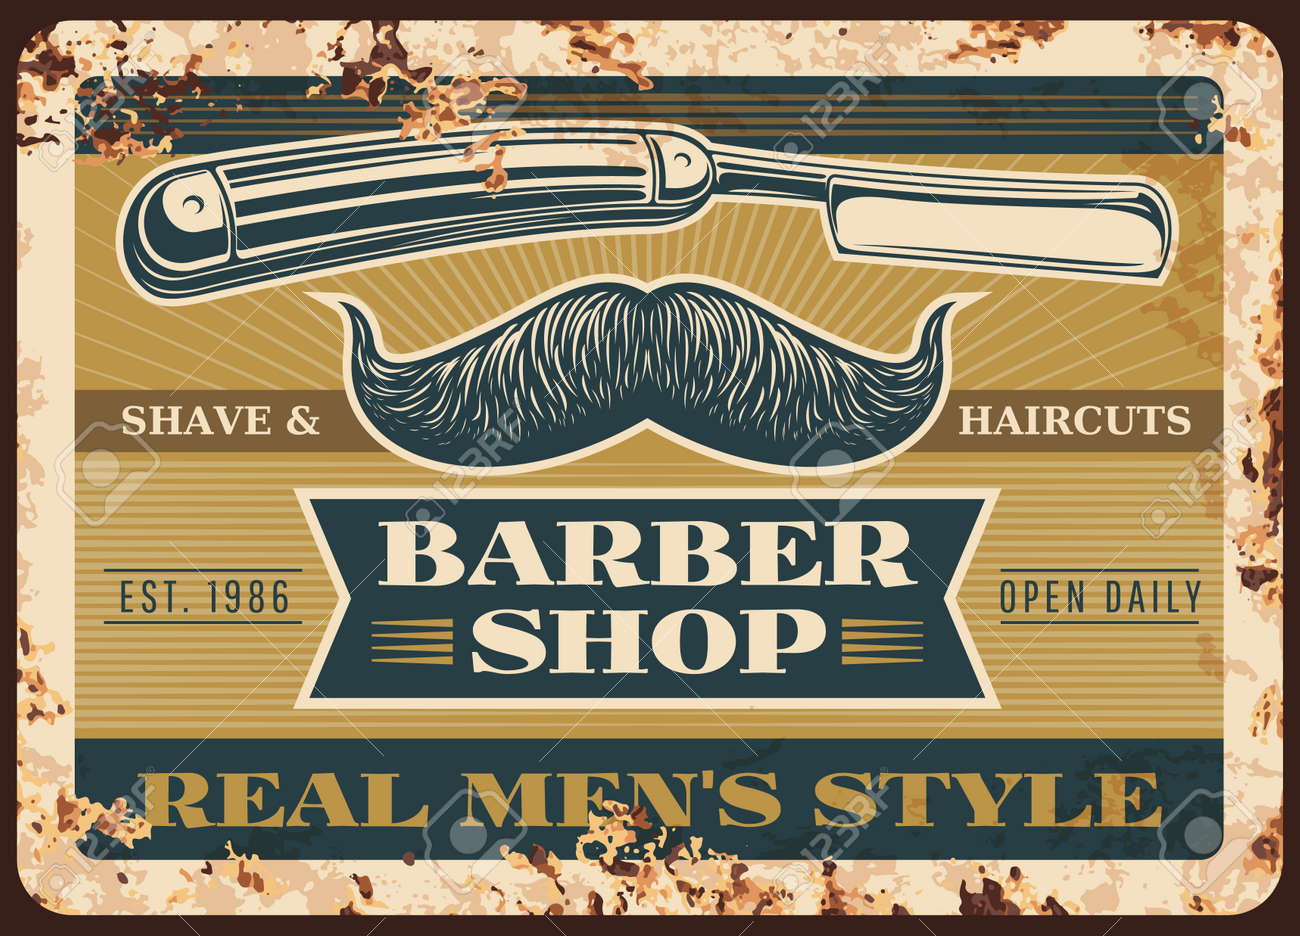 Barber shop rusty metal vector plate. Handlebar mustaches with curved extremities, straight or cutthroat razor and typography. Barbershop, men hairdresser salon retro banner or grungy sigh - 159081483